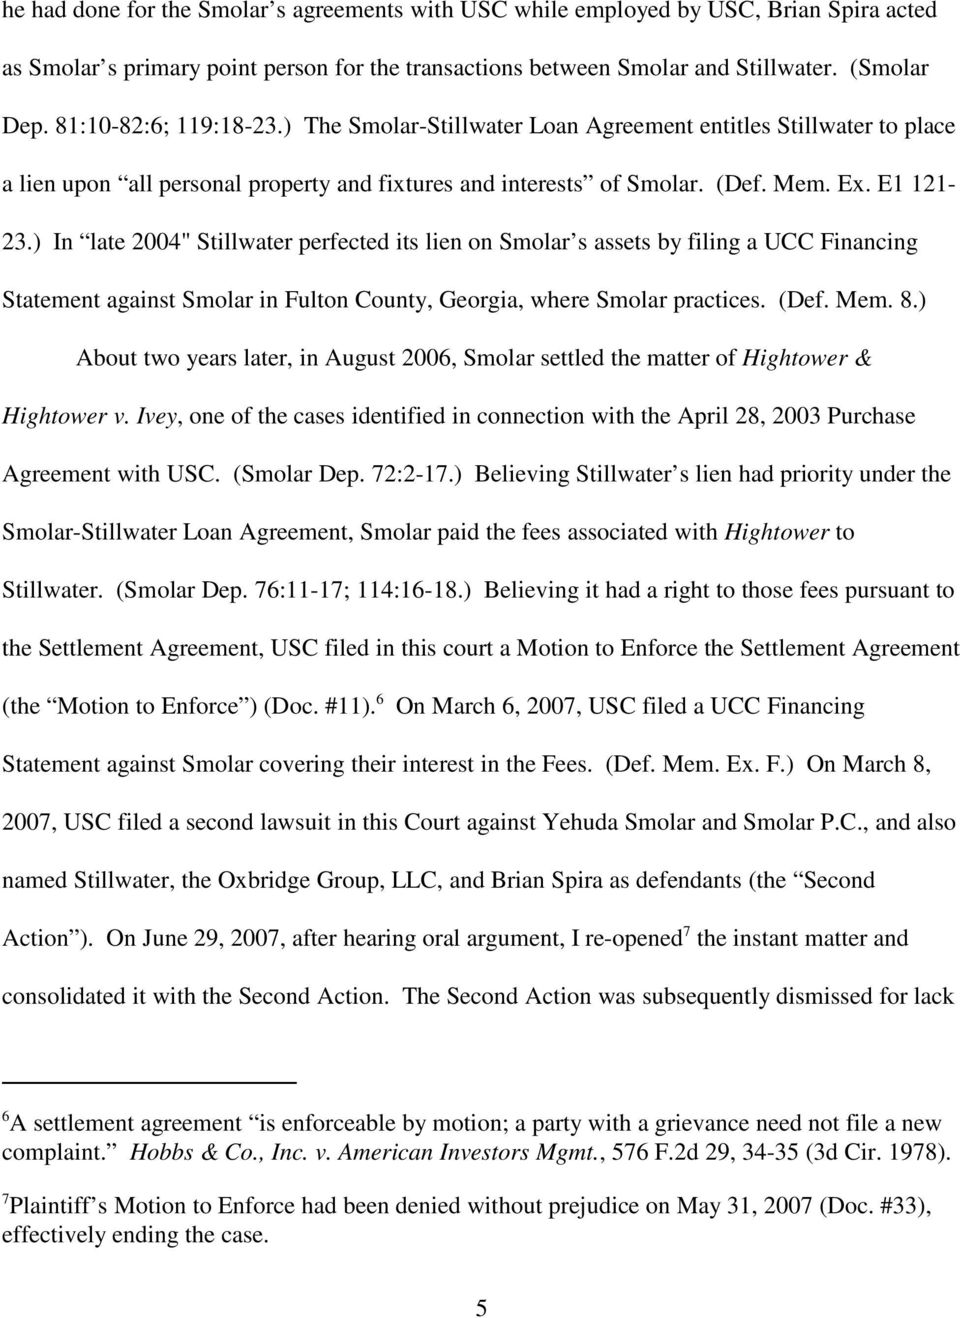 ") In late 2004"" Stillwater perfected its lien on Smolar s assets by filing a UCC Financing Statement against Smolar in Fulton County, Georgia, where Smolar practices. (Def. Mem. 8."